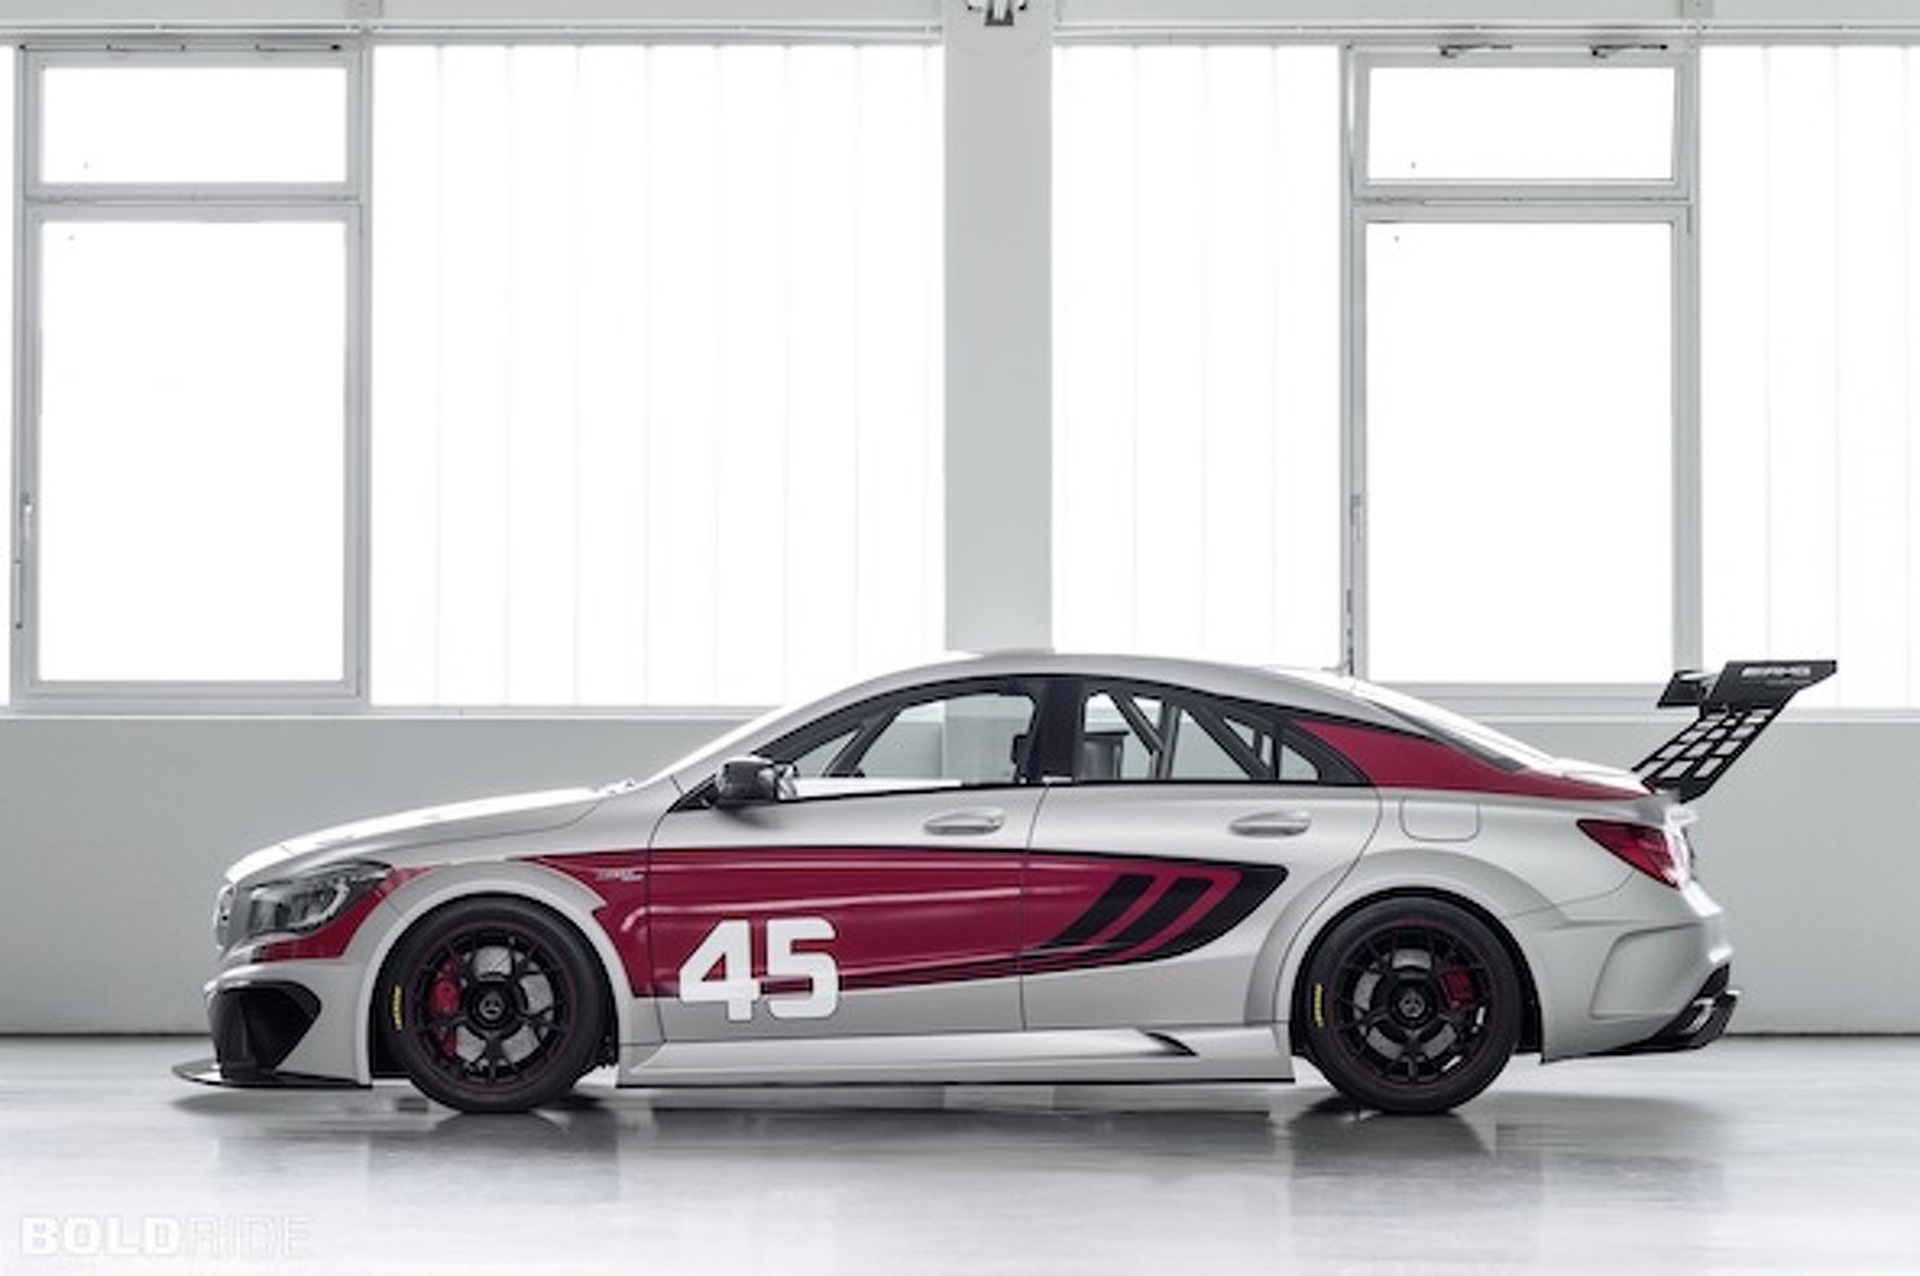 Mercedes-Benz Shows Off CLA 45 AMG in a Handsome Racing Suit